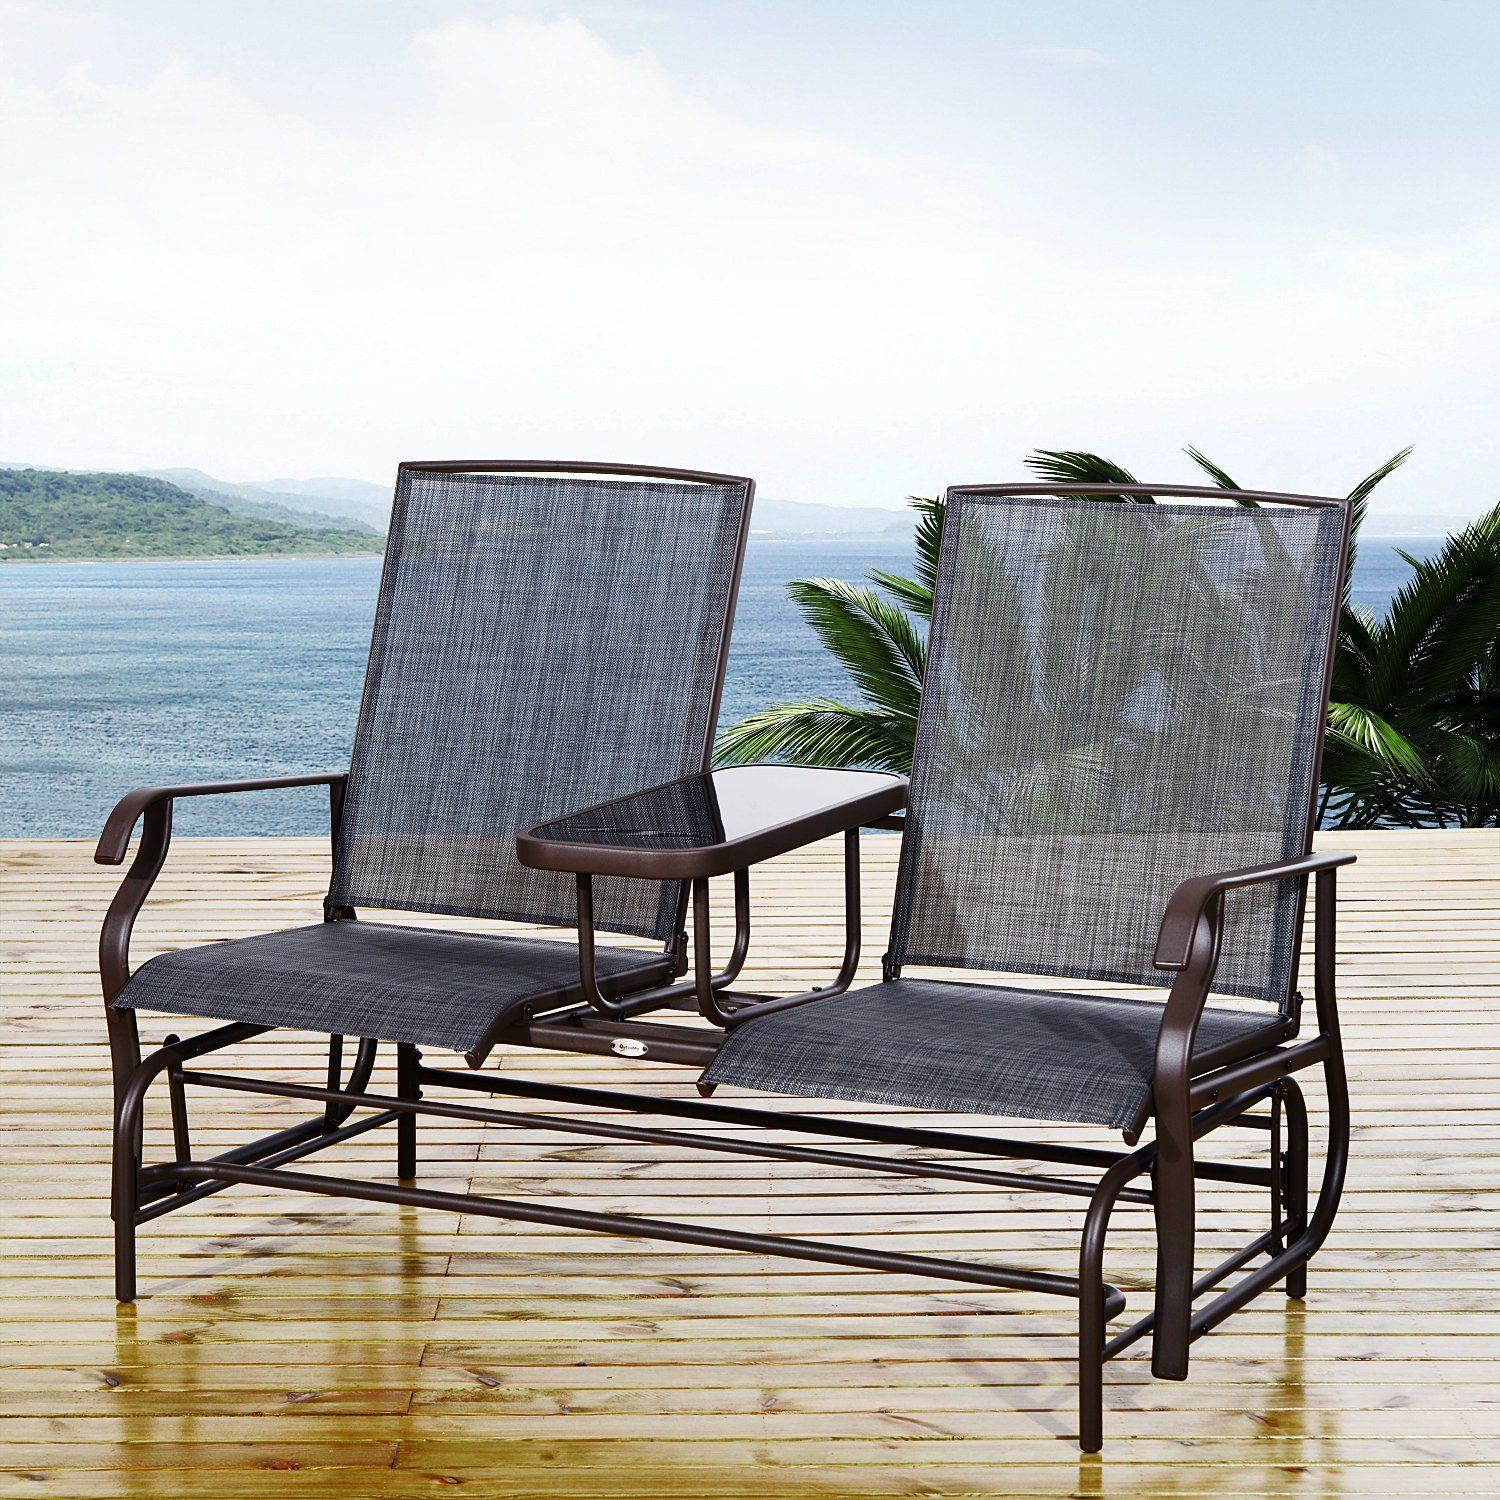 Outsunny Metal Double Swing Chair Glider Rocking Chair